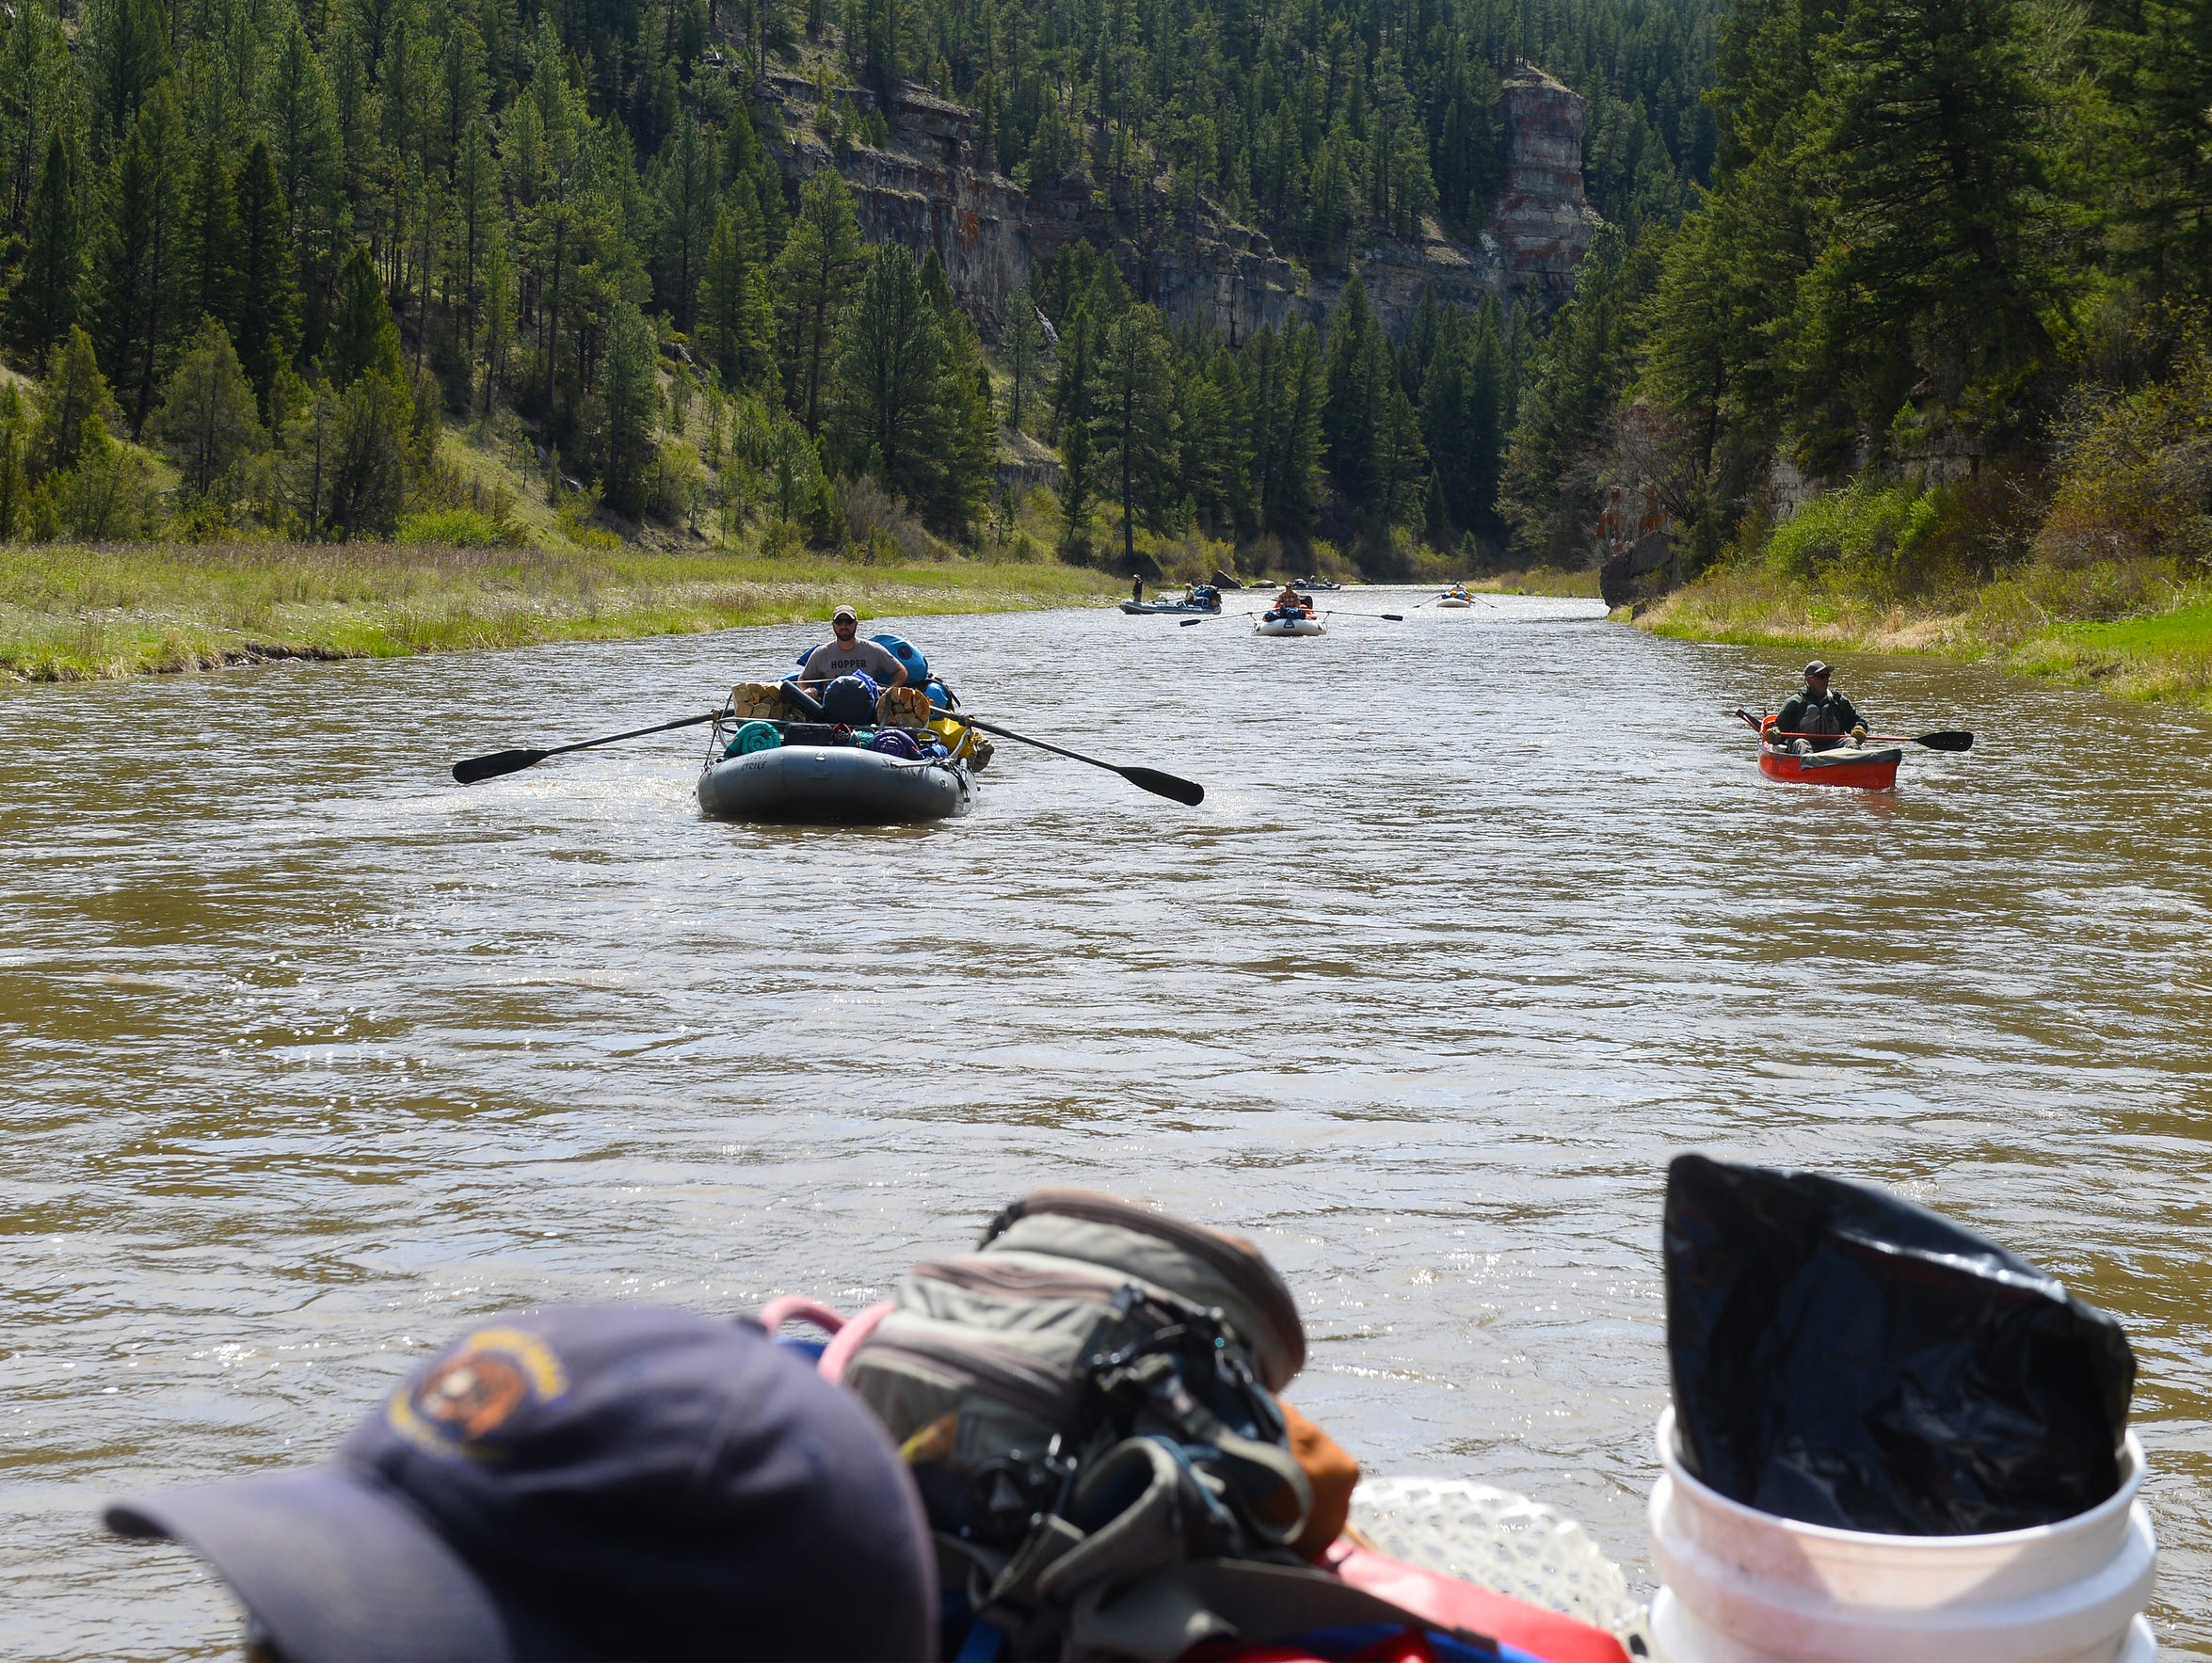 A Smith River traffic jam.  Outfitter gear boats get